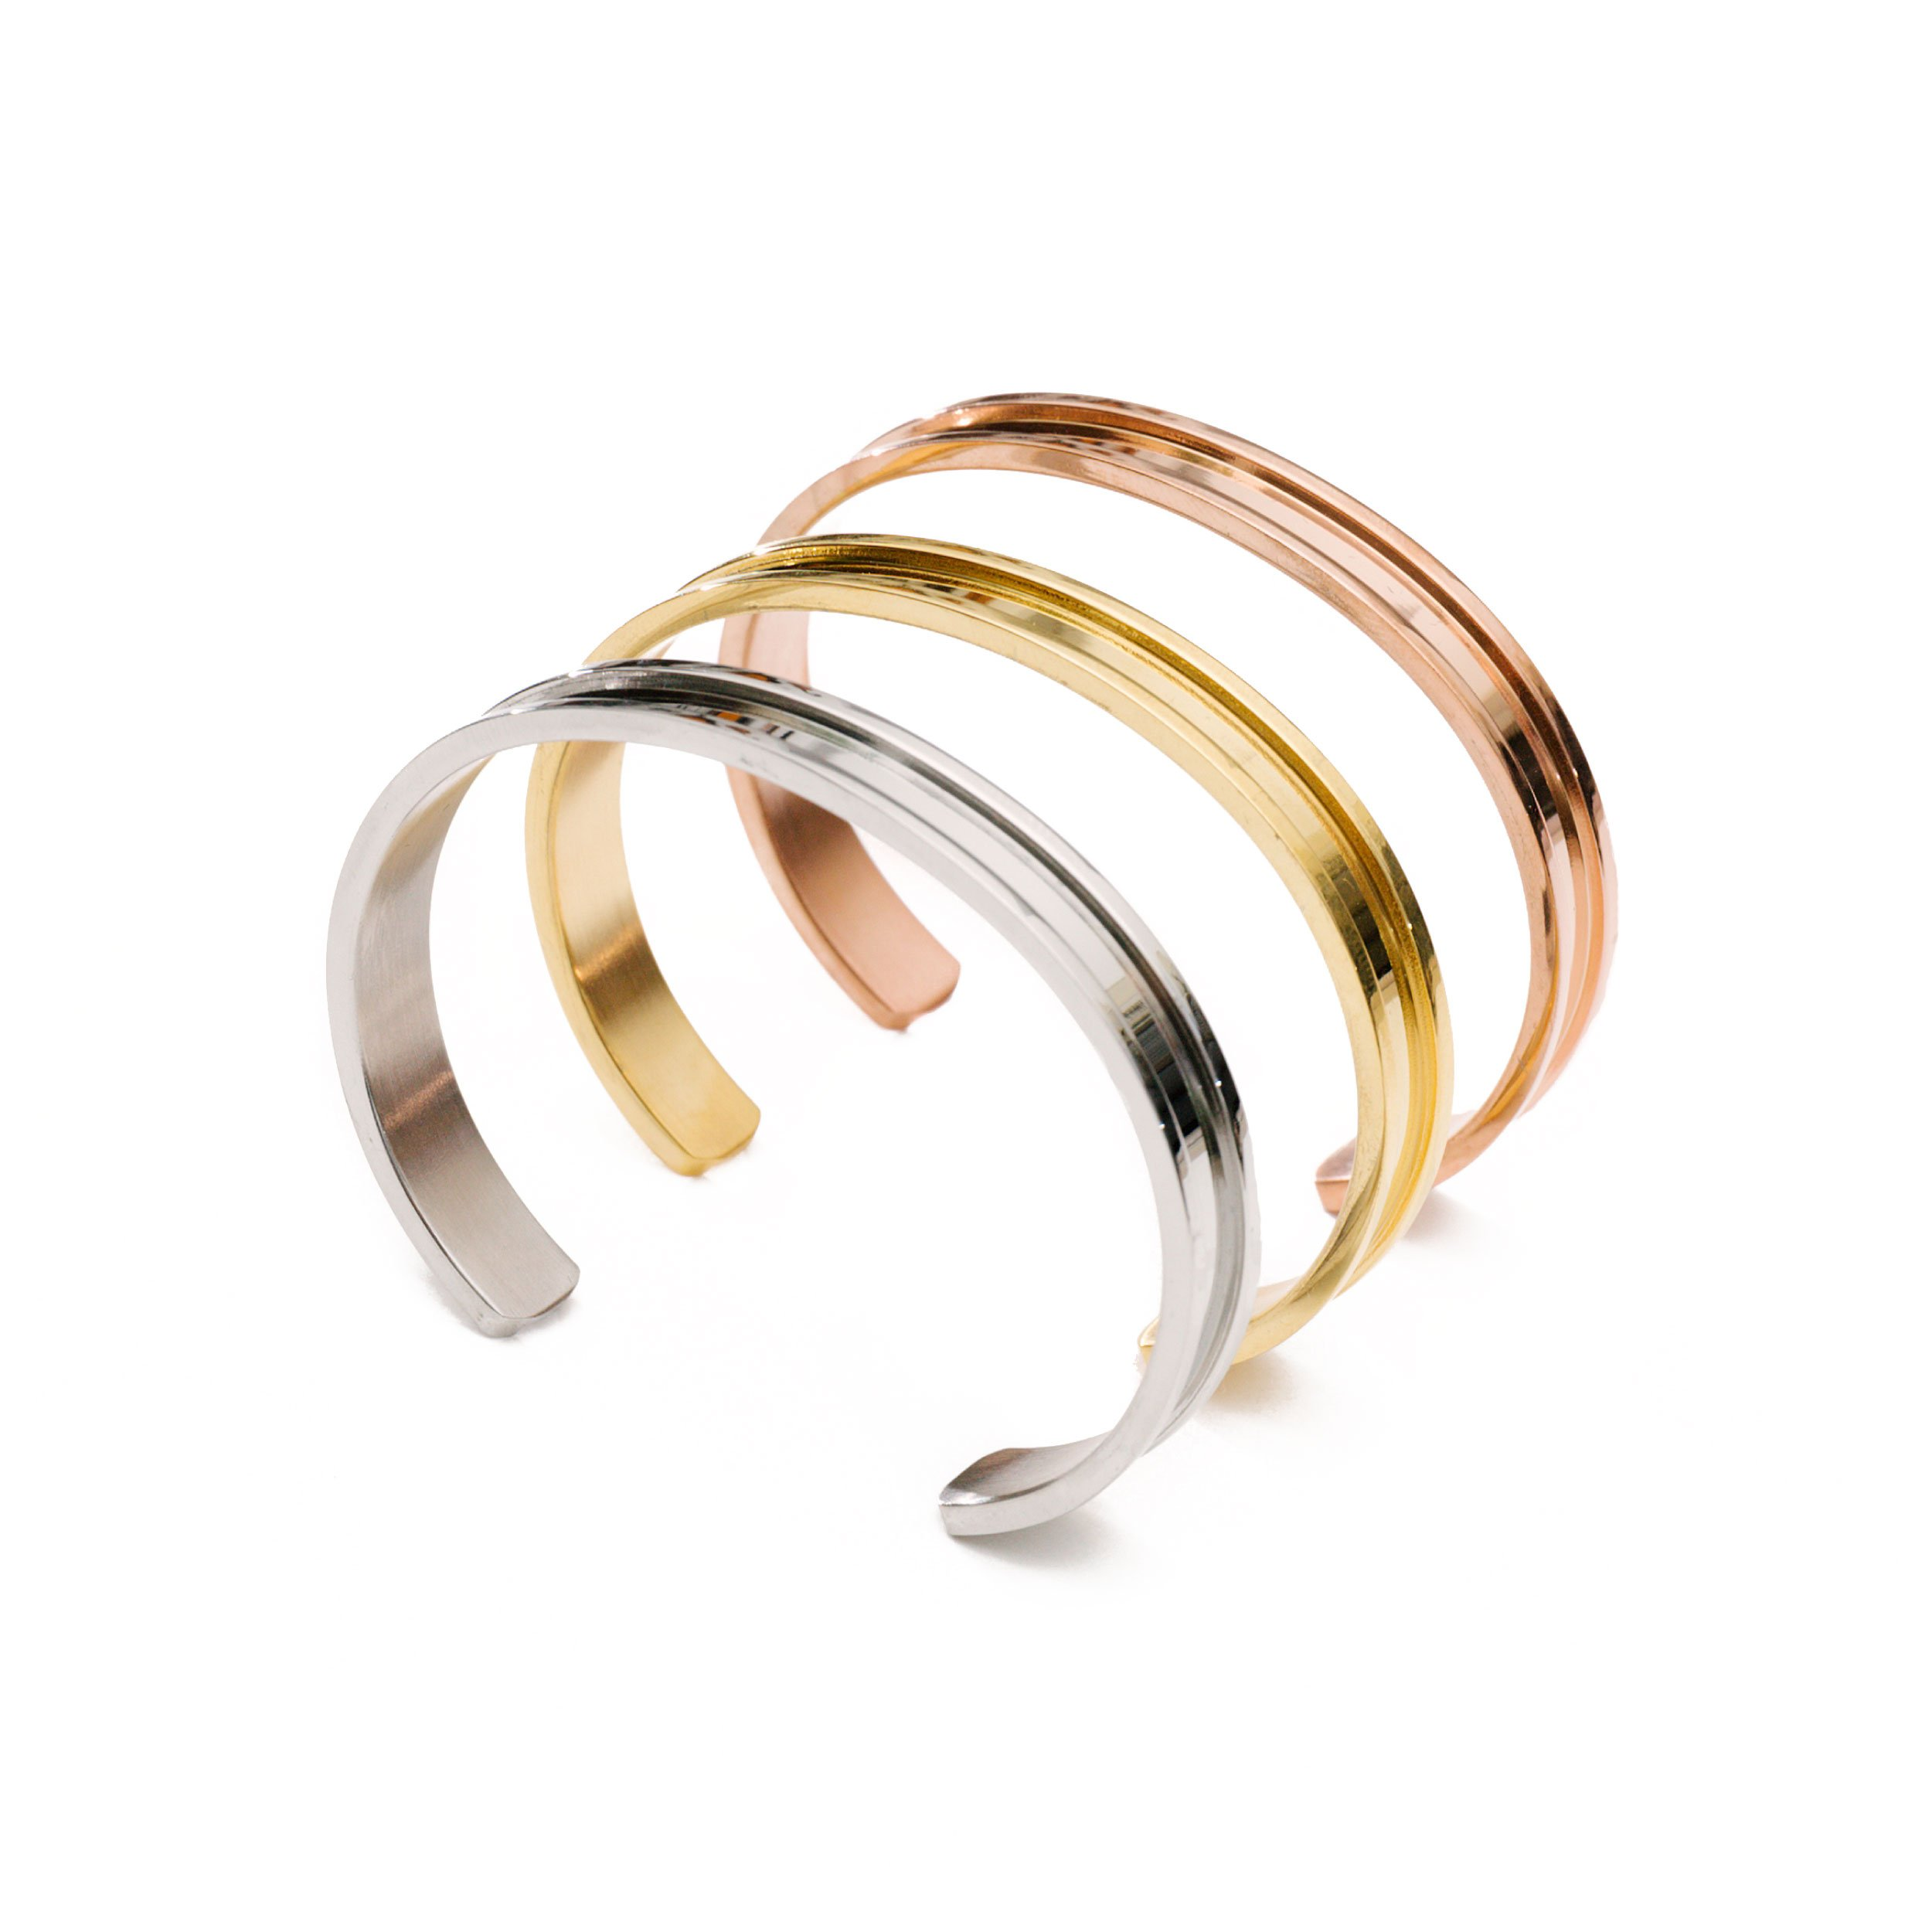 Hair Tie Bracelet by Lucky Lady Collections | Gold, Silver and Rose Gold Grooved Cuff Bangles (3 Pack) | Women's Fashion Bracelets for Comfort and Style | No-Show Hair Elastic Bangles for Girls